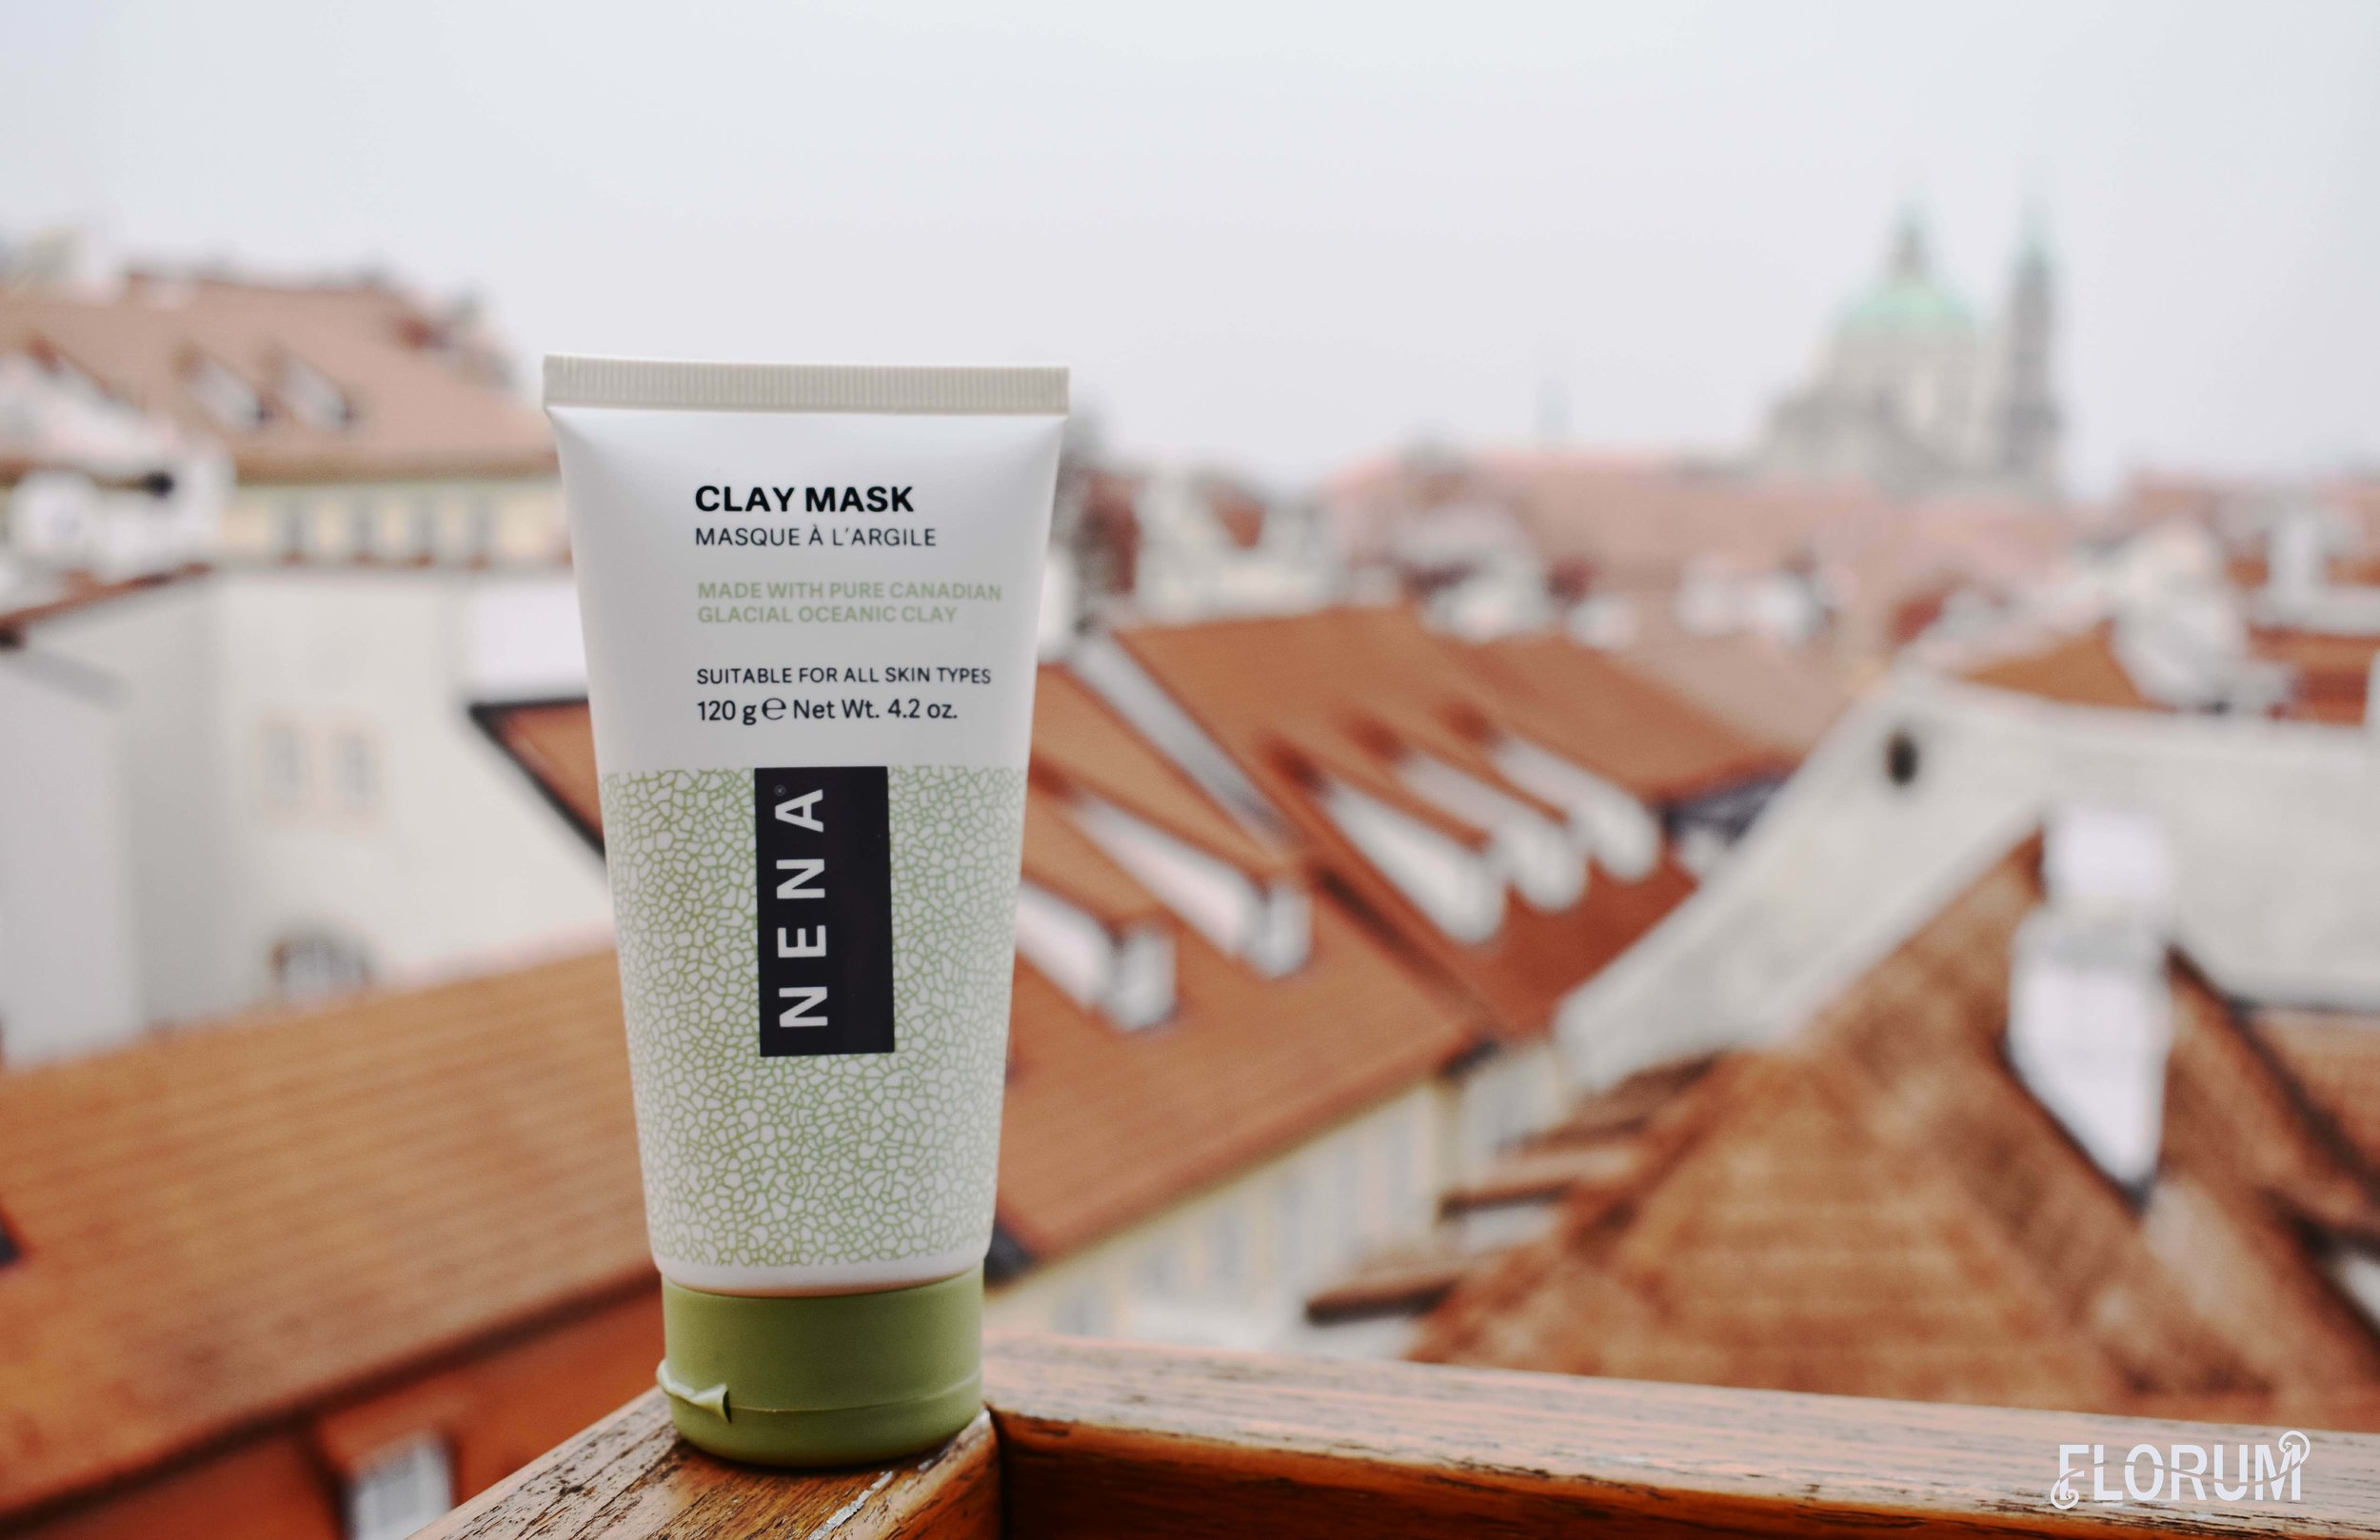 The second surprise that came in the COMFORT box from Ellebox was the Clay Mask from NENA Skincare which retails for $35